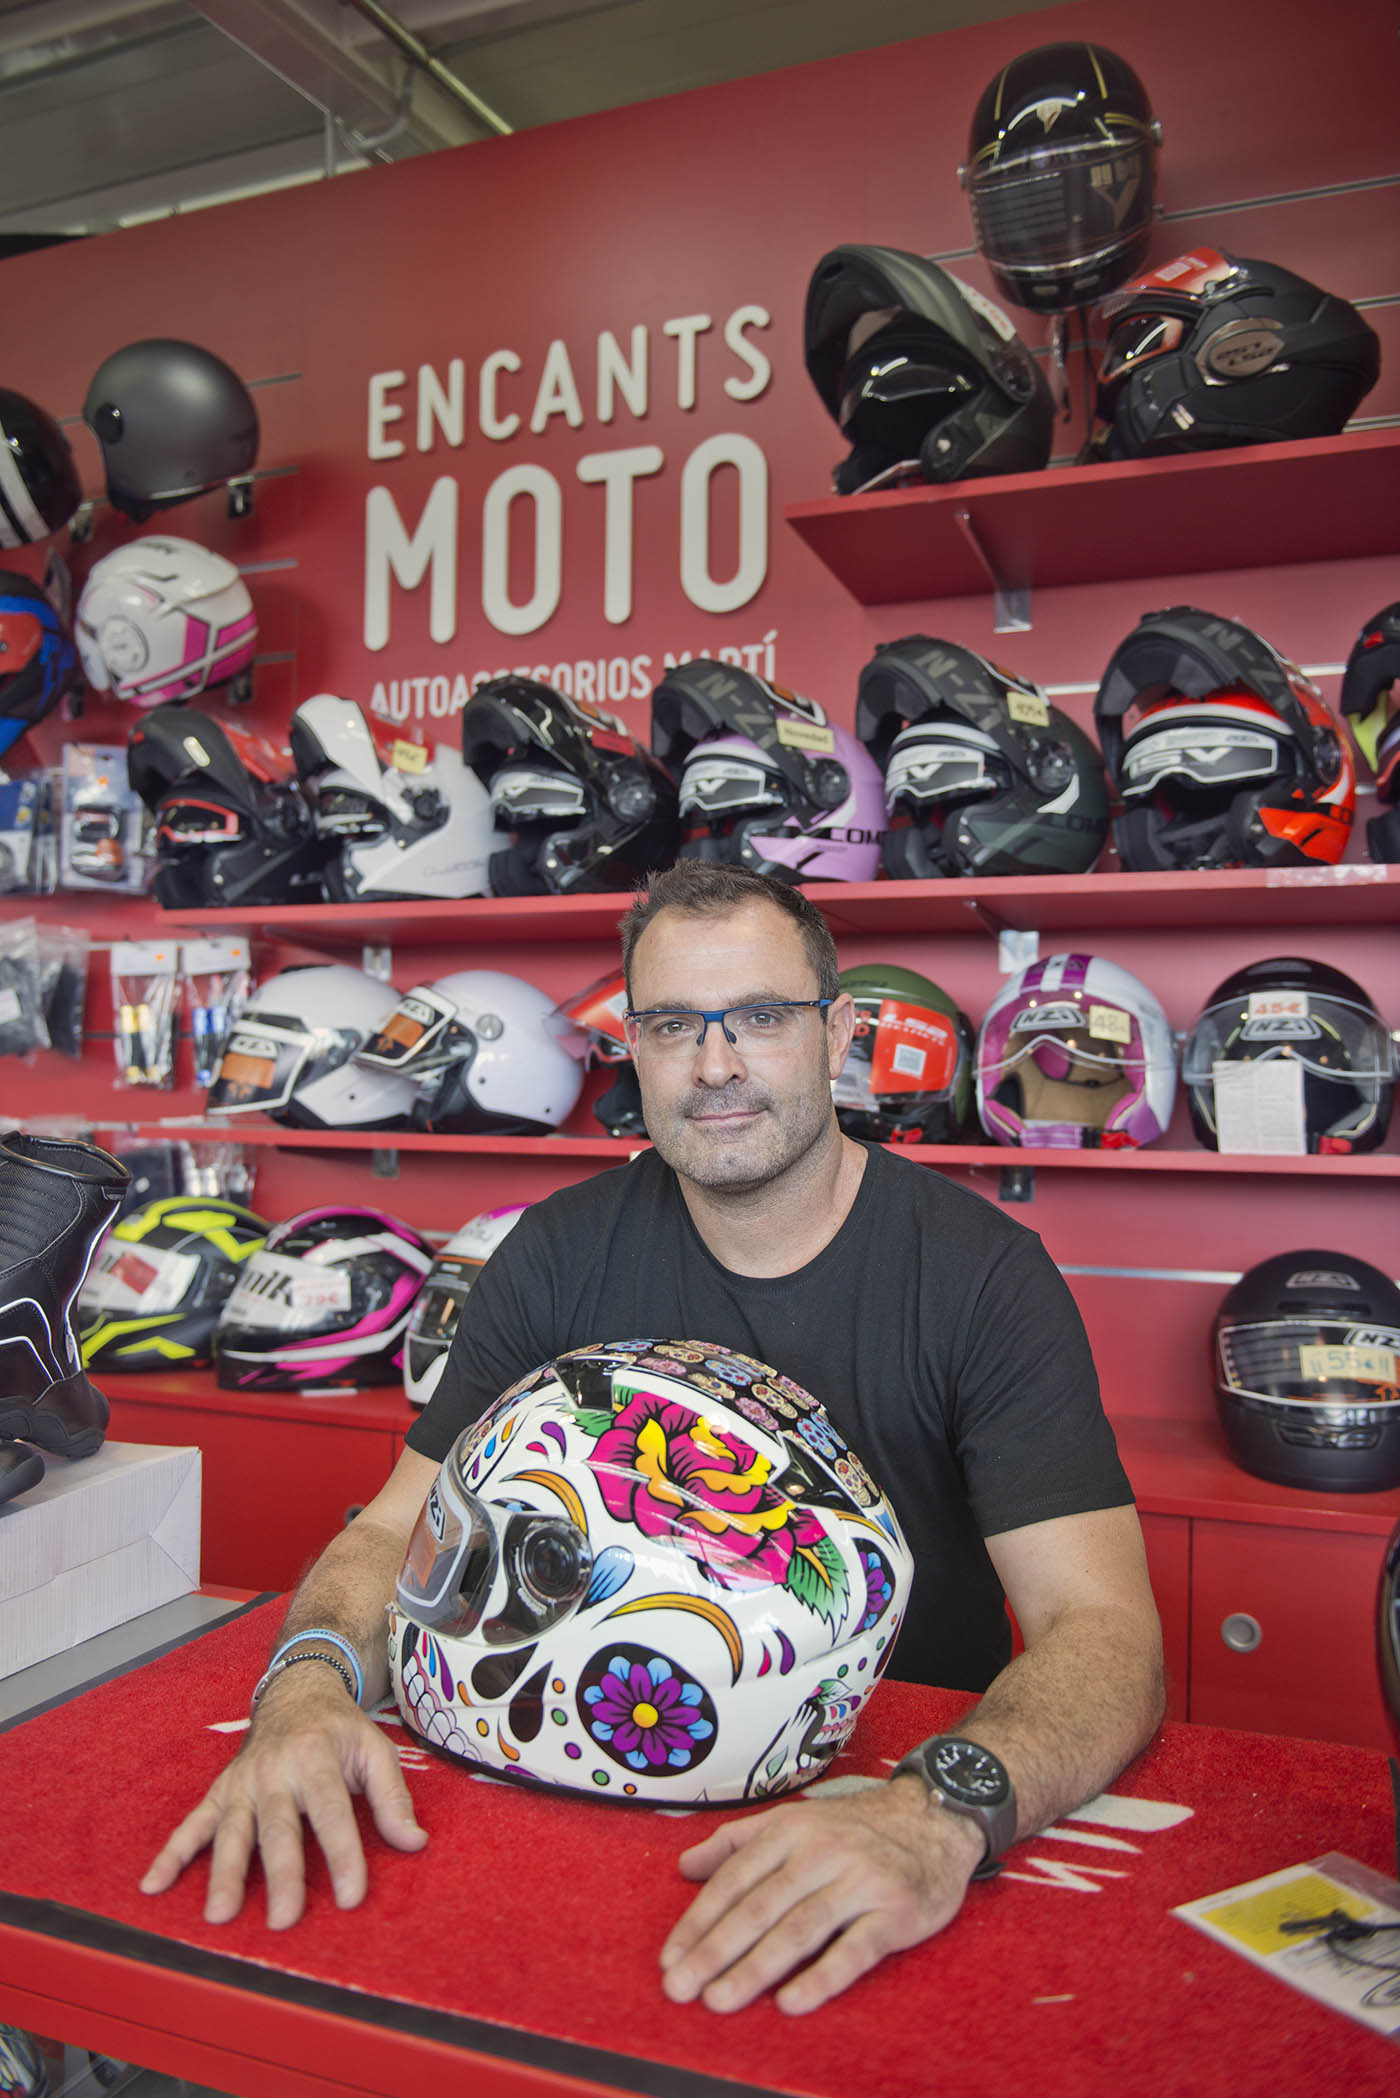 Encants Moto & Bike